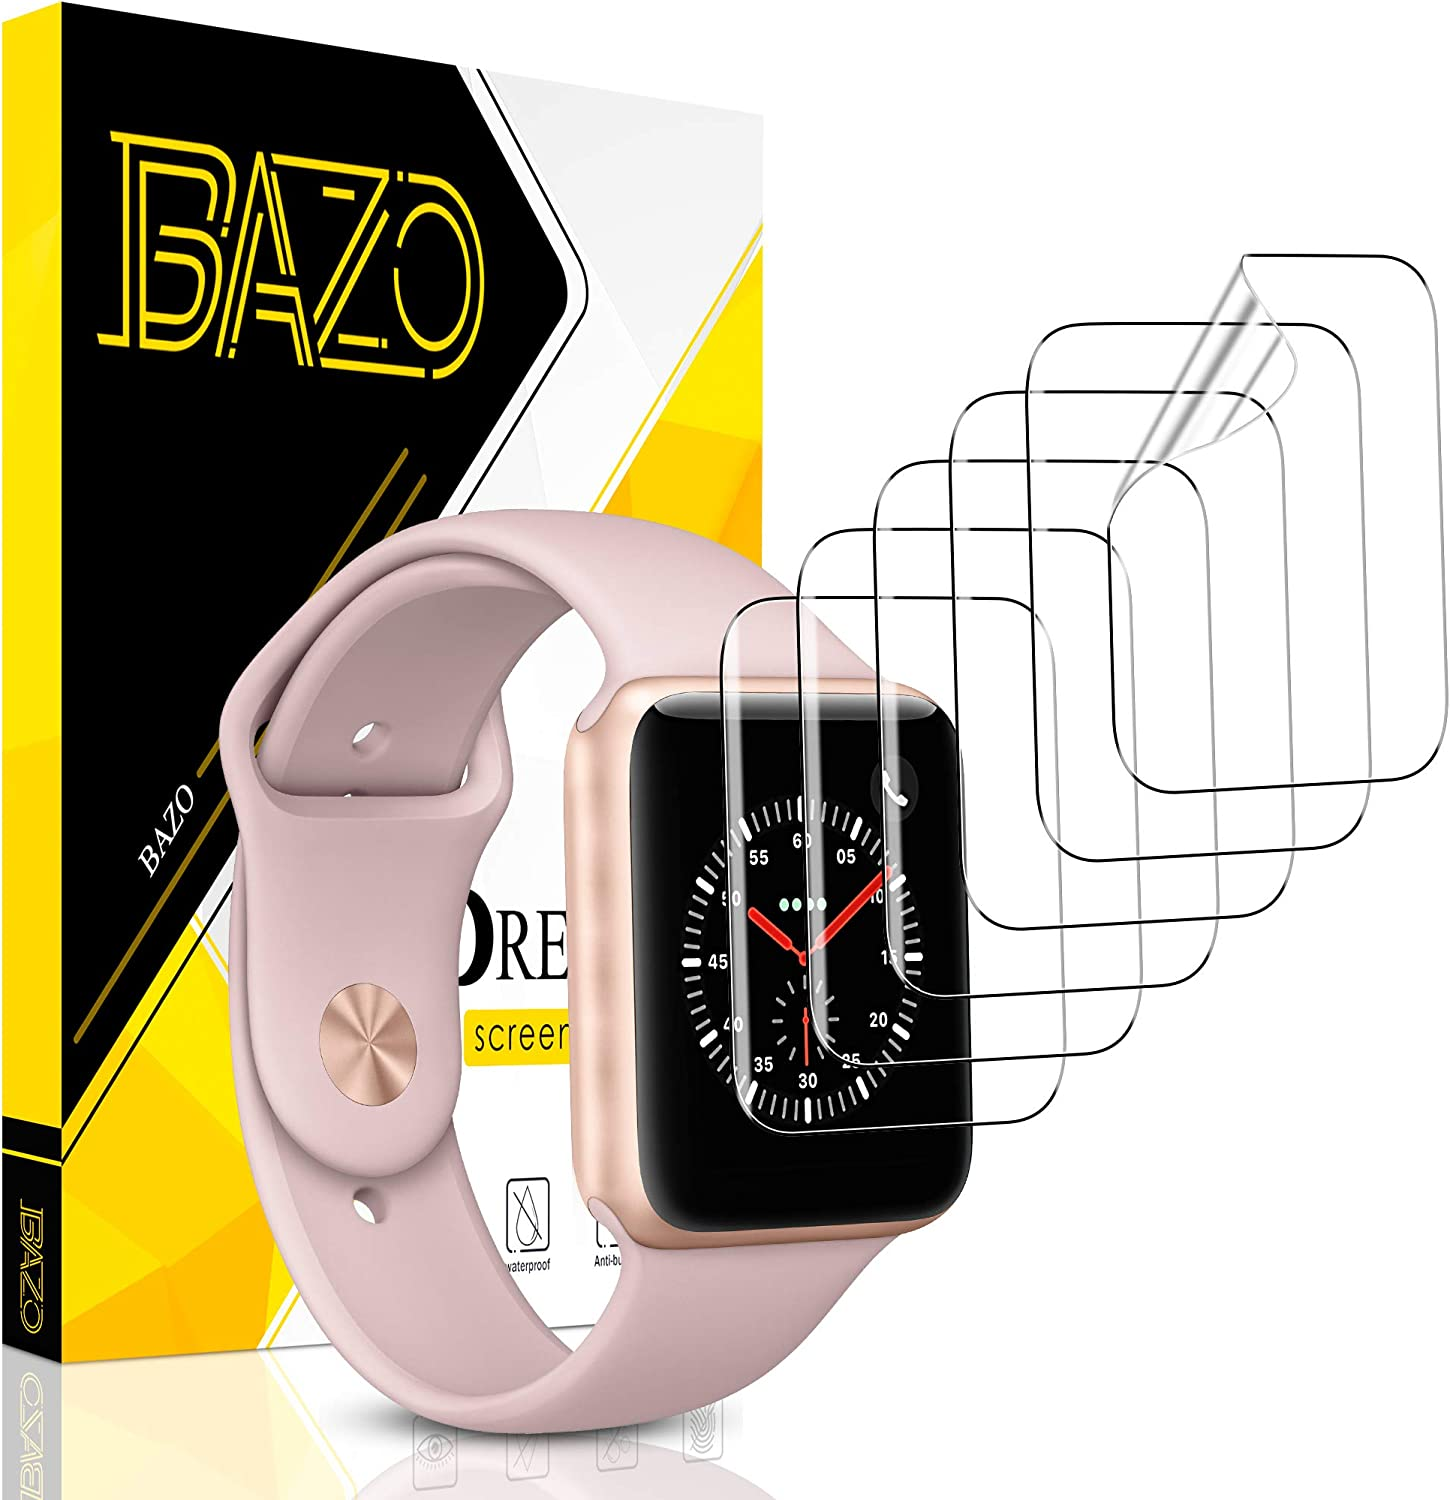 [6 Pack] BAZO Screen Protector for Apple Watch Series 3/2/1 42MM, [Soft Flexible TPU] Scratch Resistant HD Clear iWatch Film